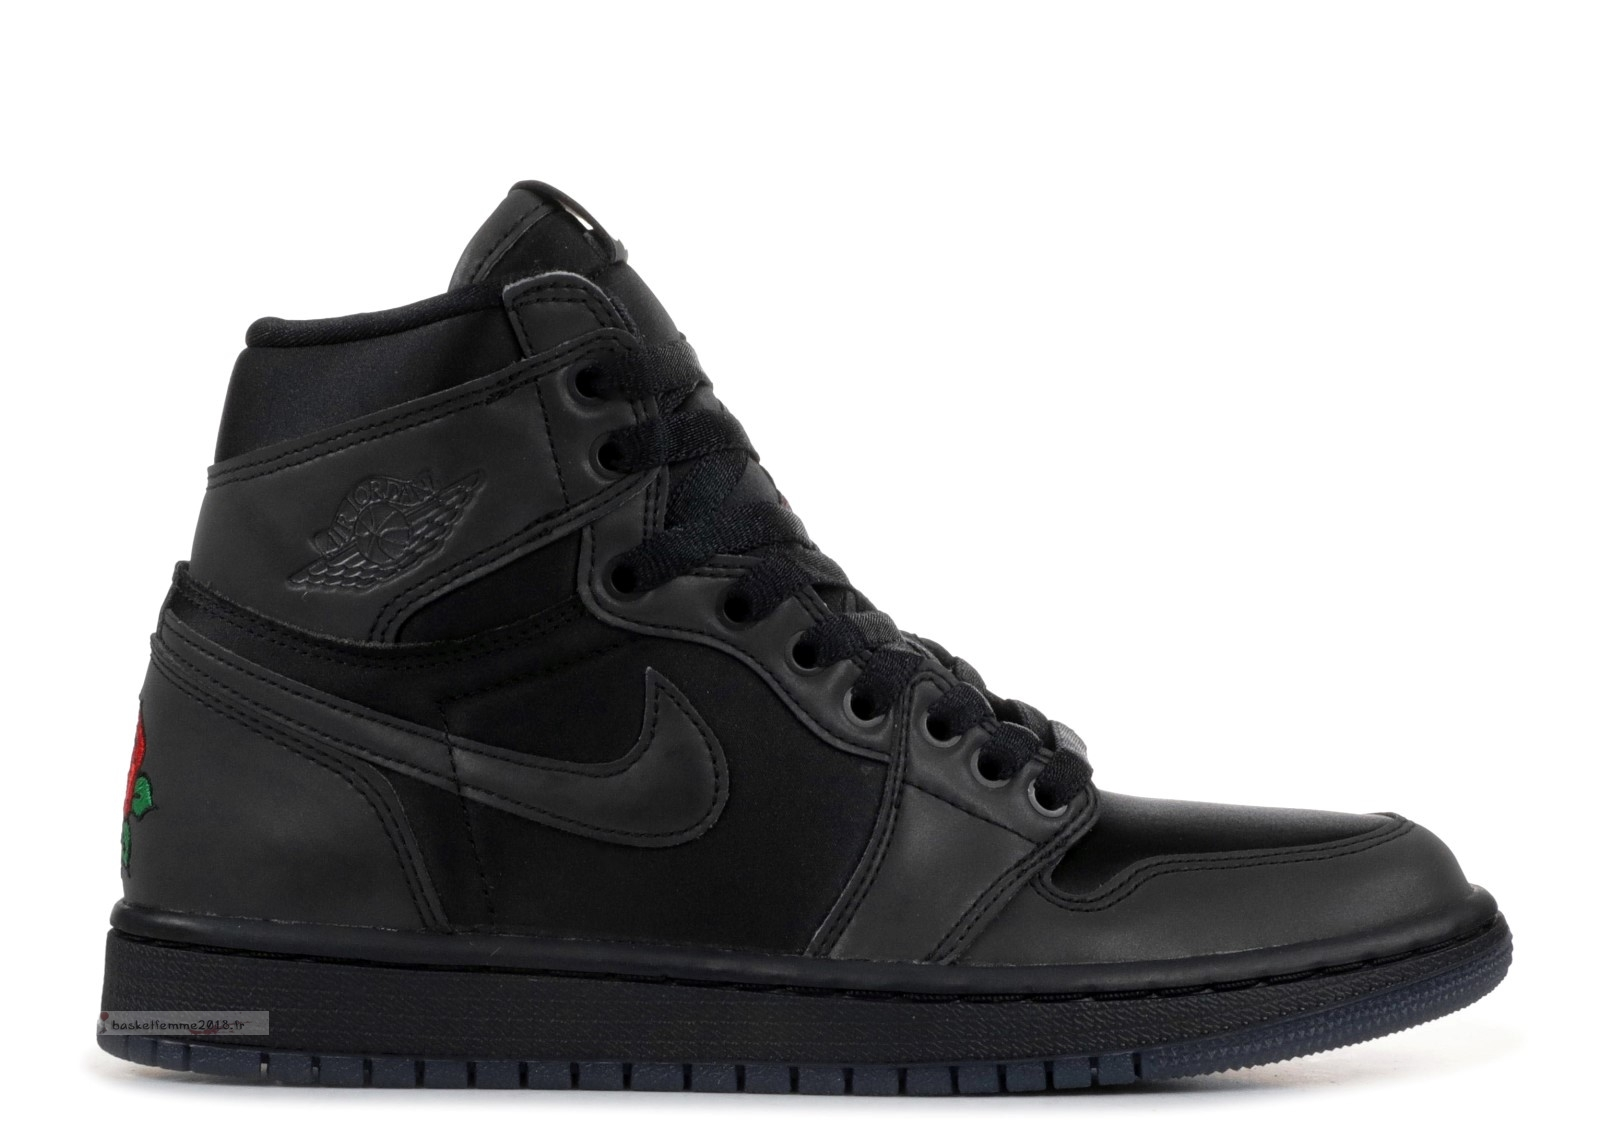 "Air Jordan 1 Femme Retro High ""Rox Brown"" Noir (bv1576-001) Chaussure de Basket"